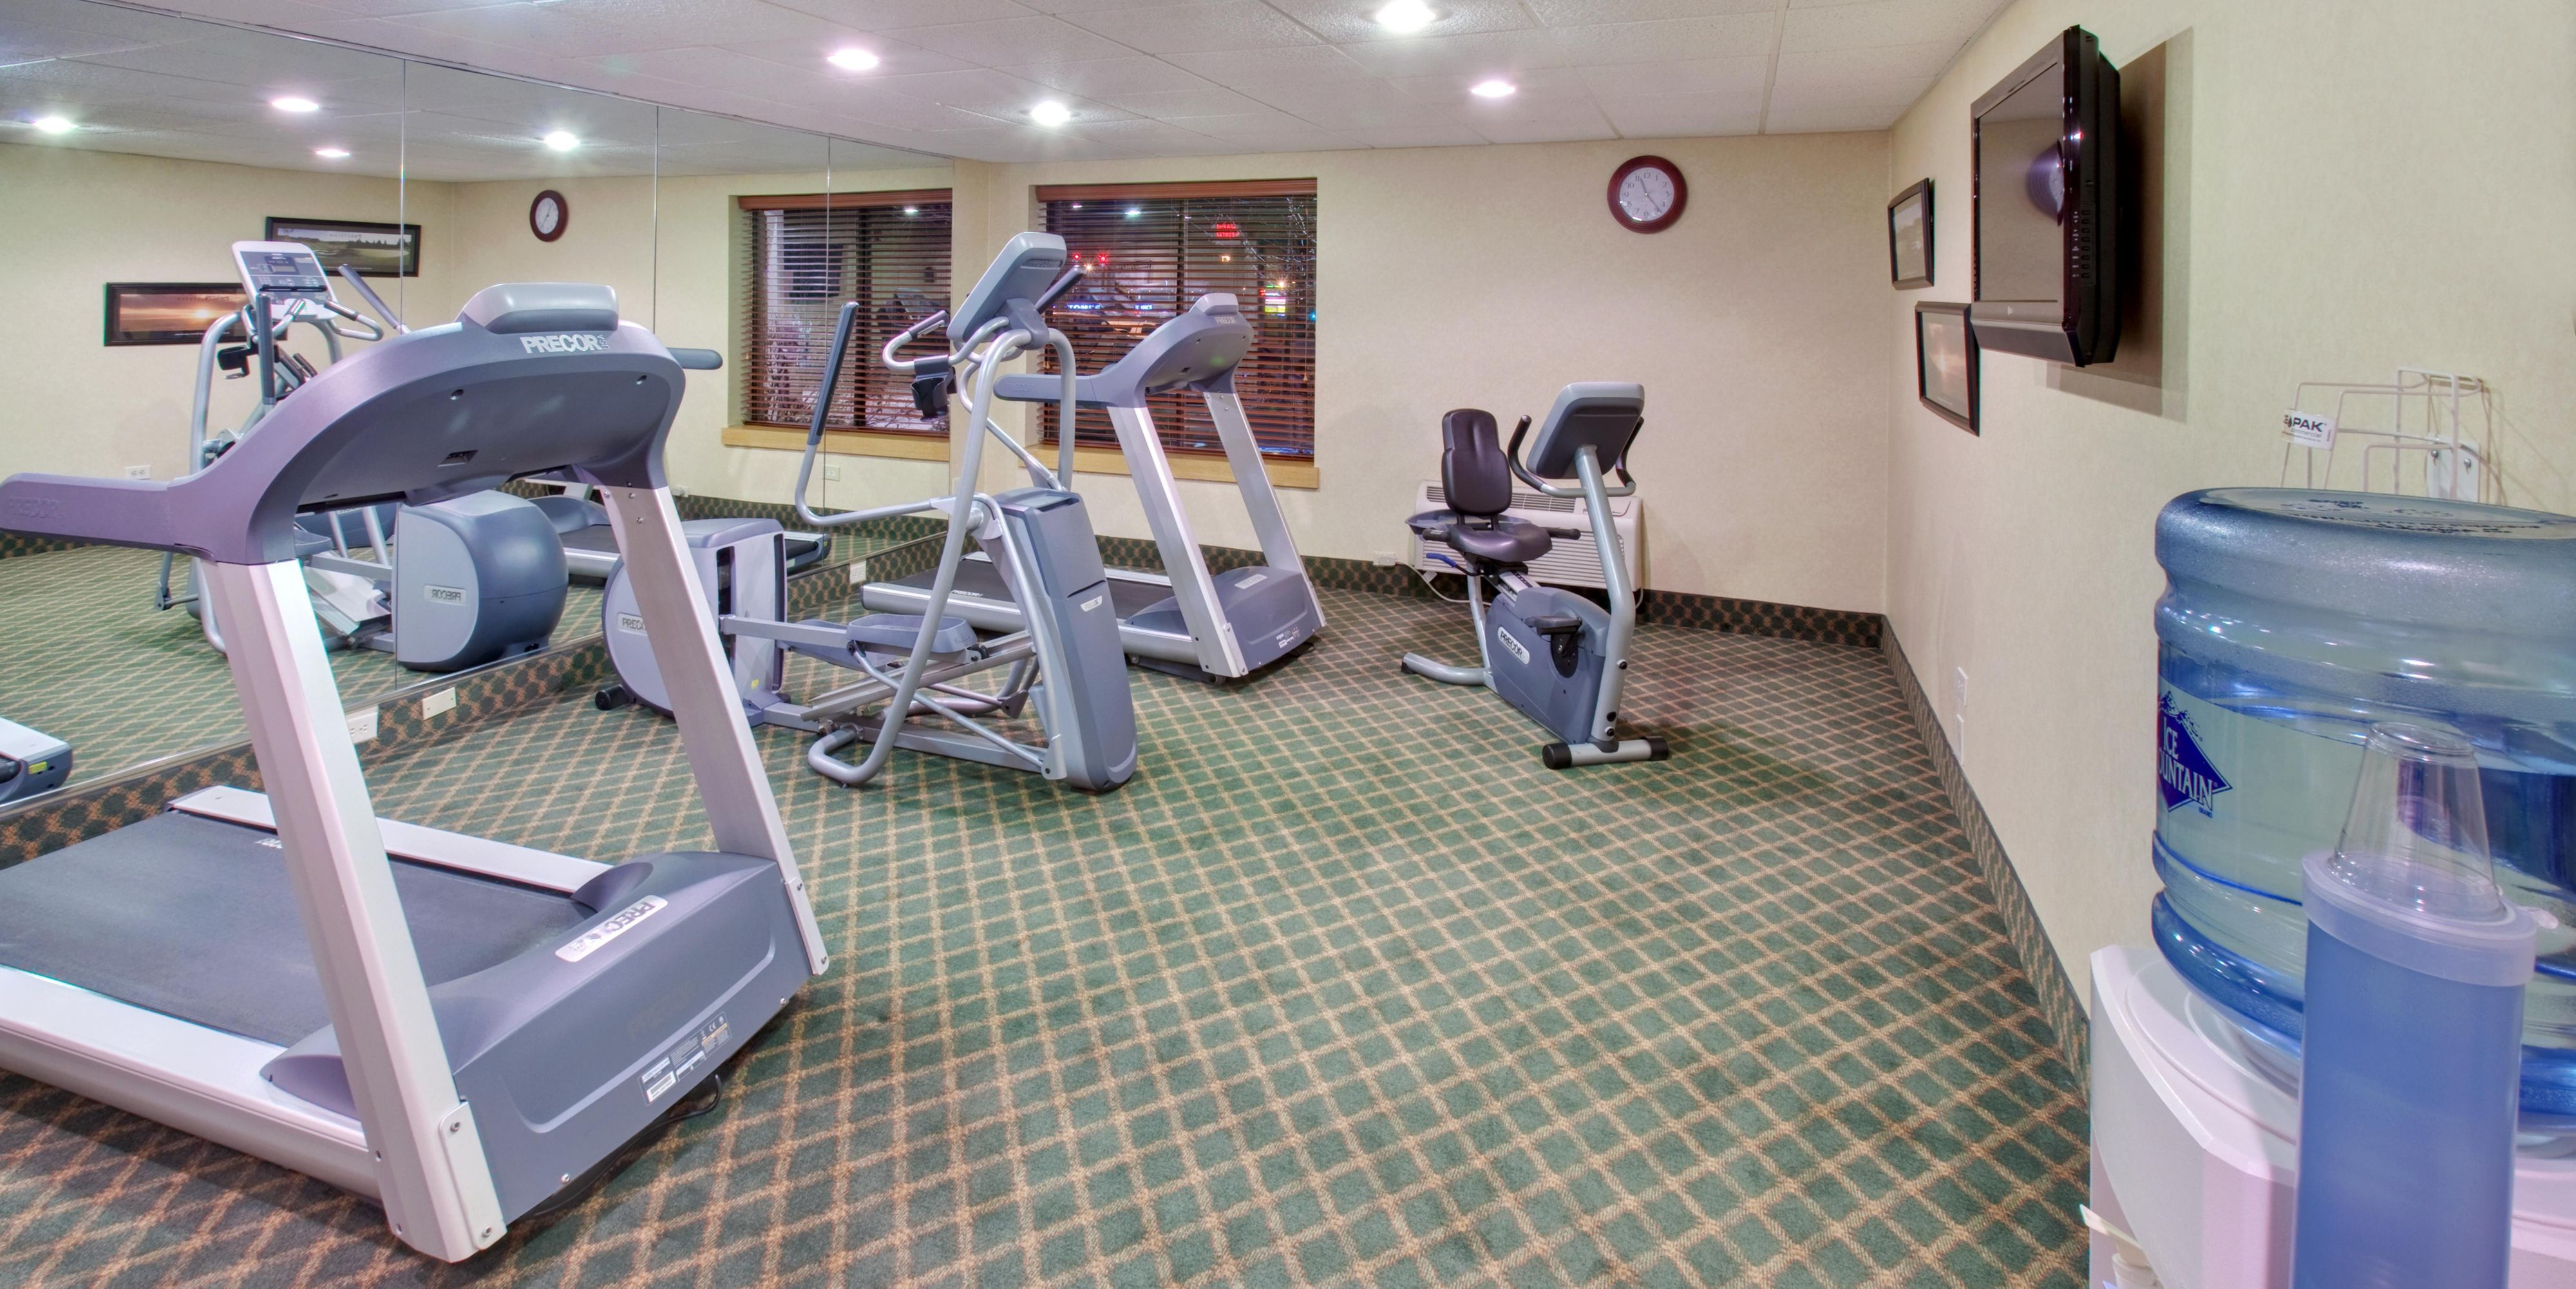 Holiday Inn Express Downers Grove 4180105489 2x1